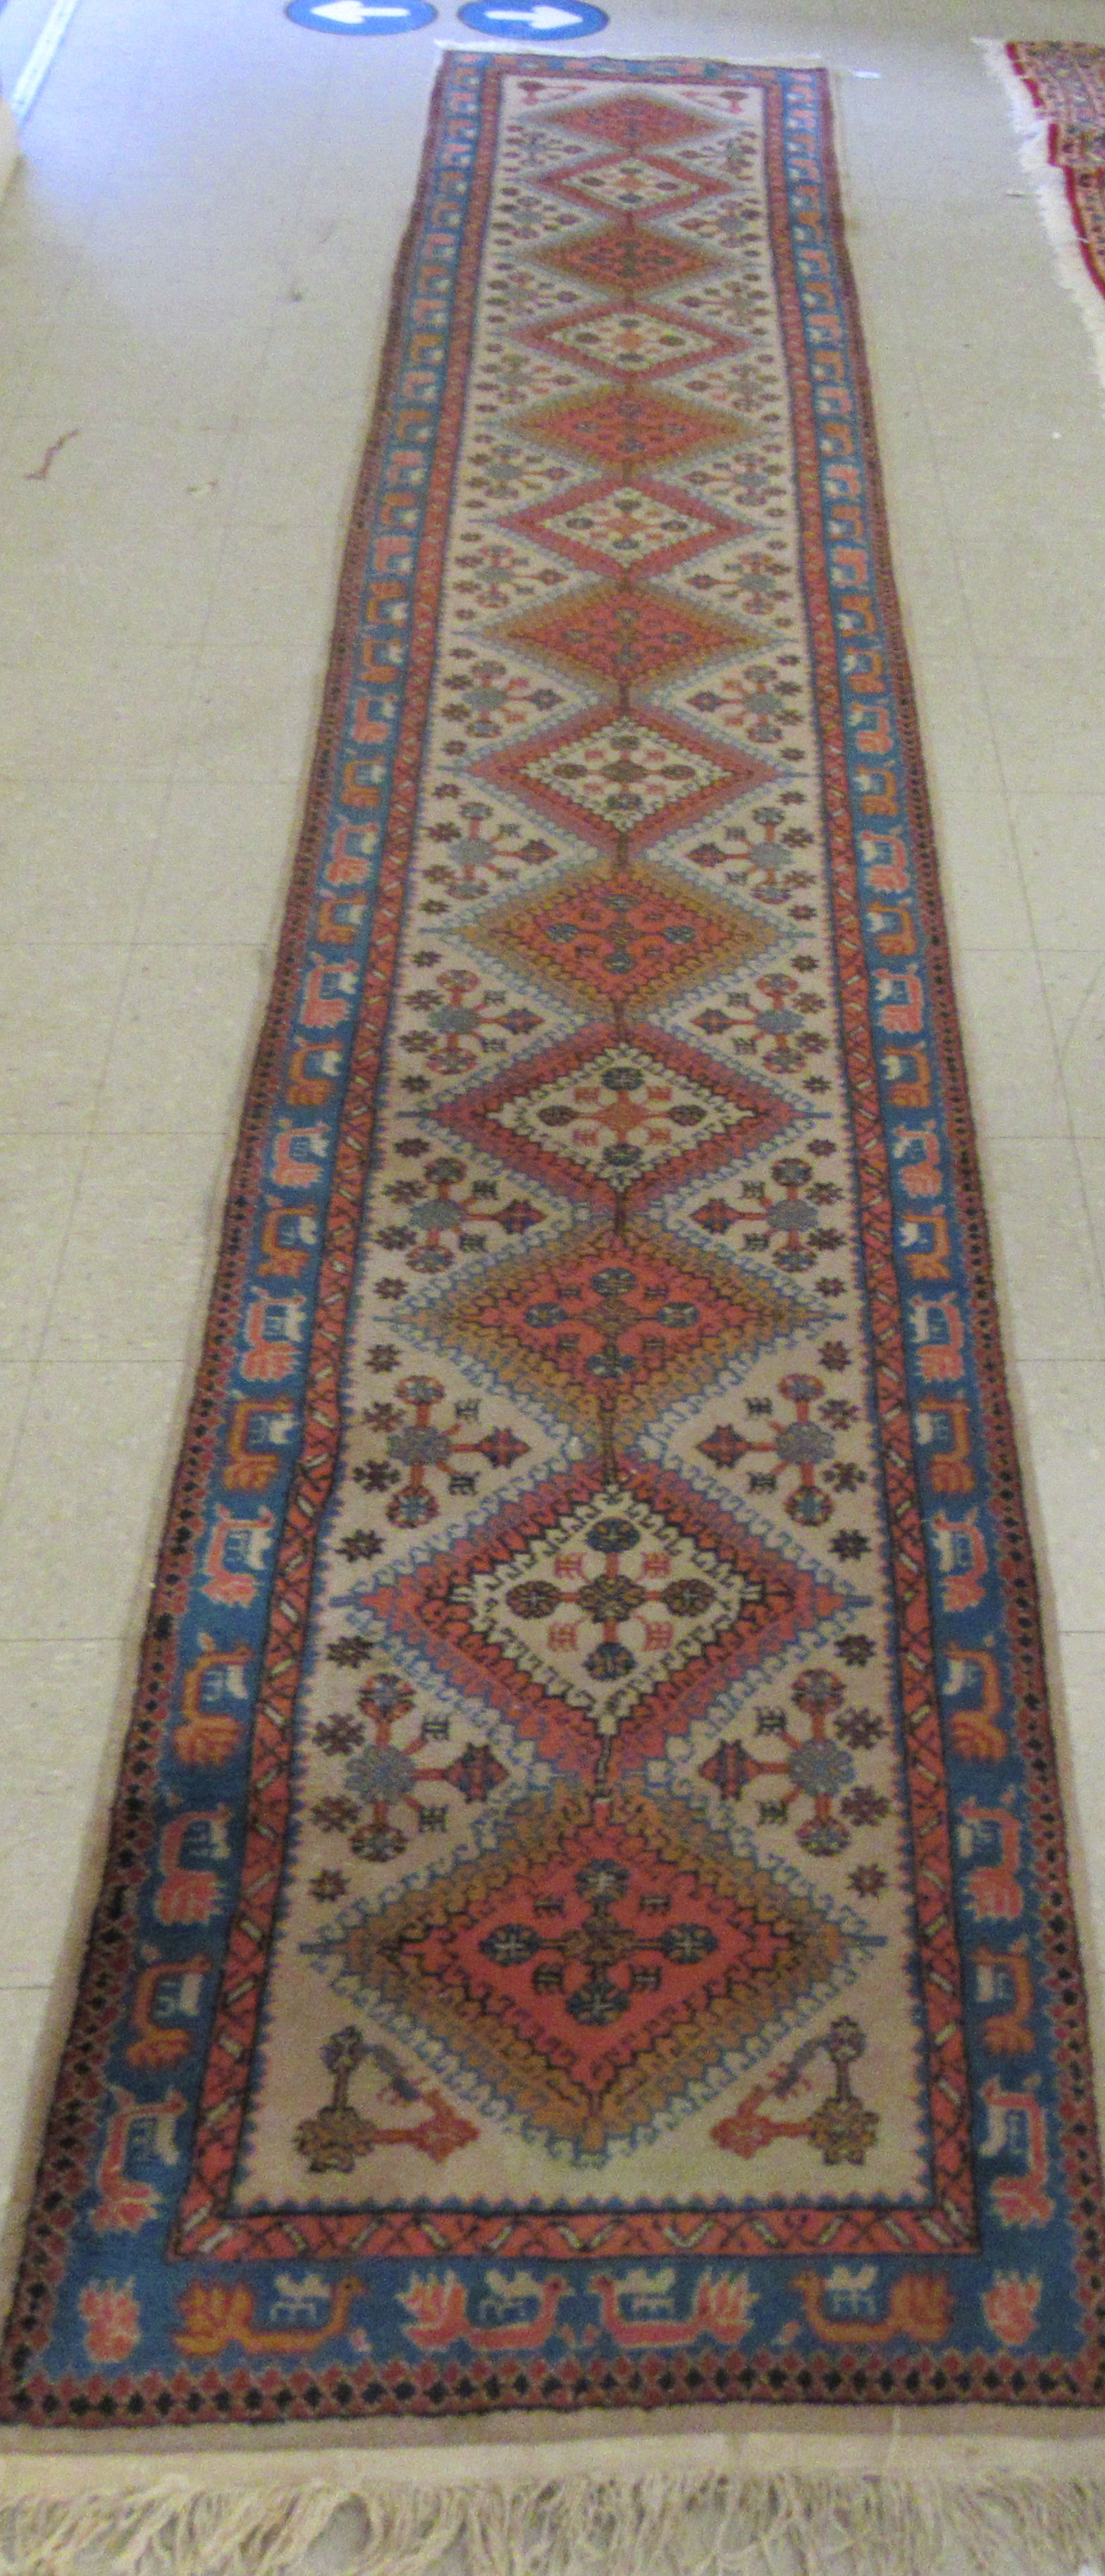 A Samarkand runner, decorated with repeating diamond formations, bordered by stylised designs, on